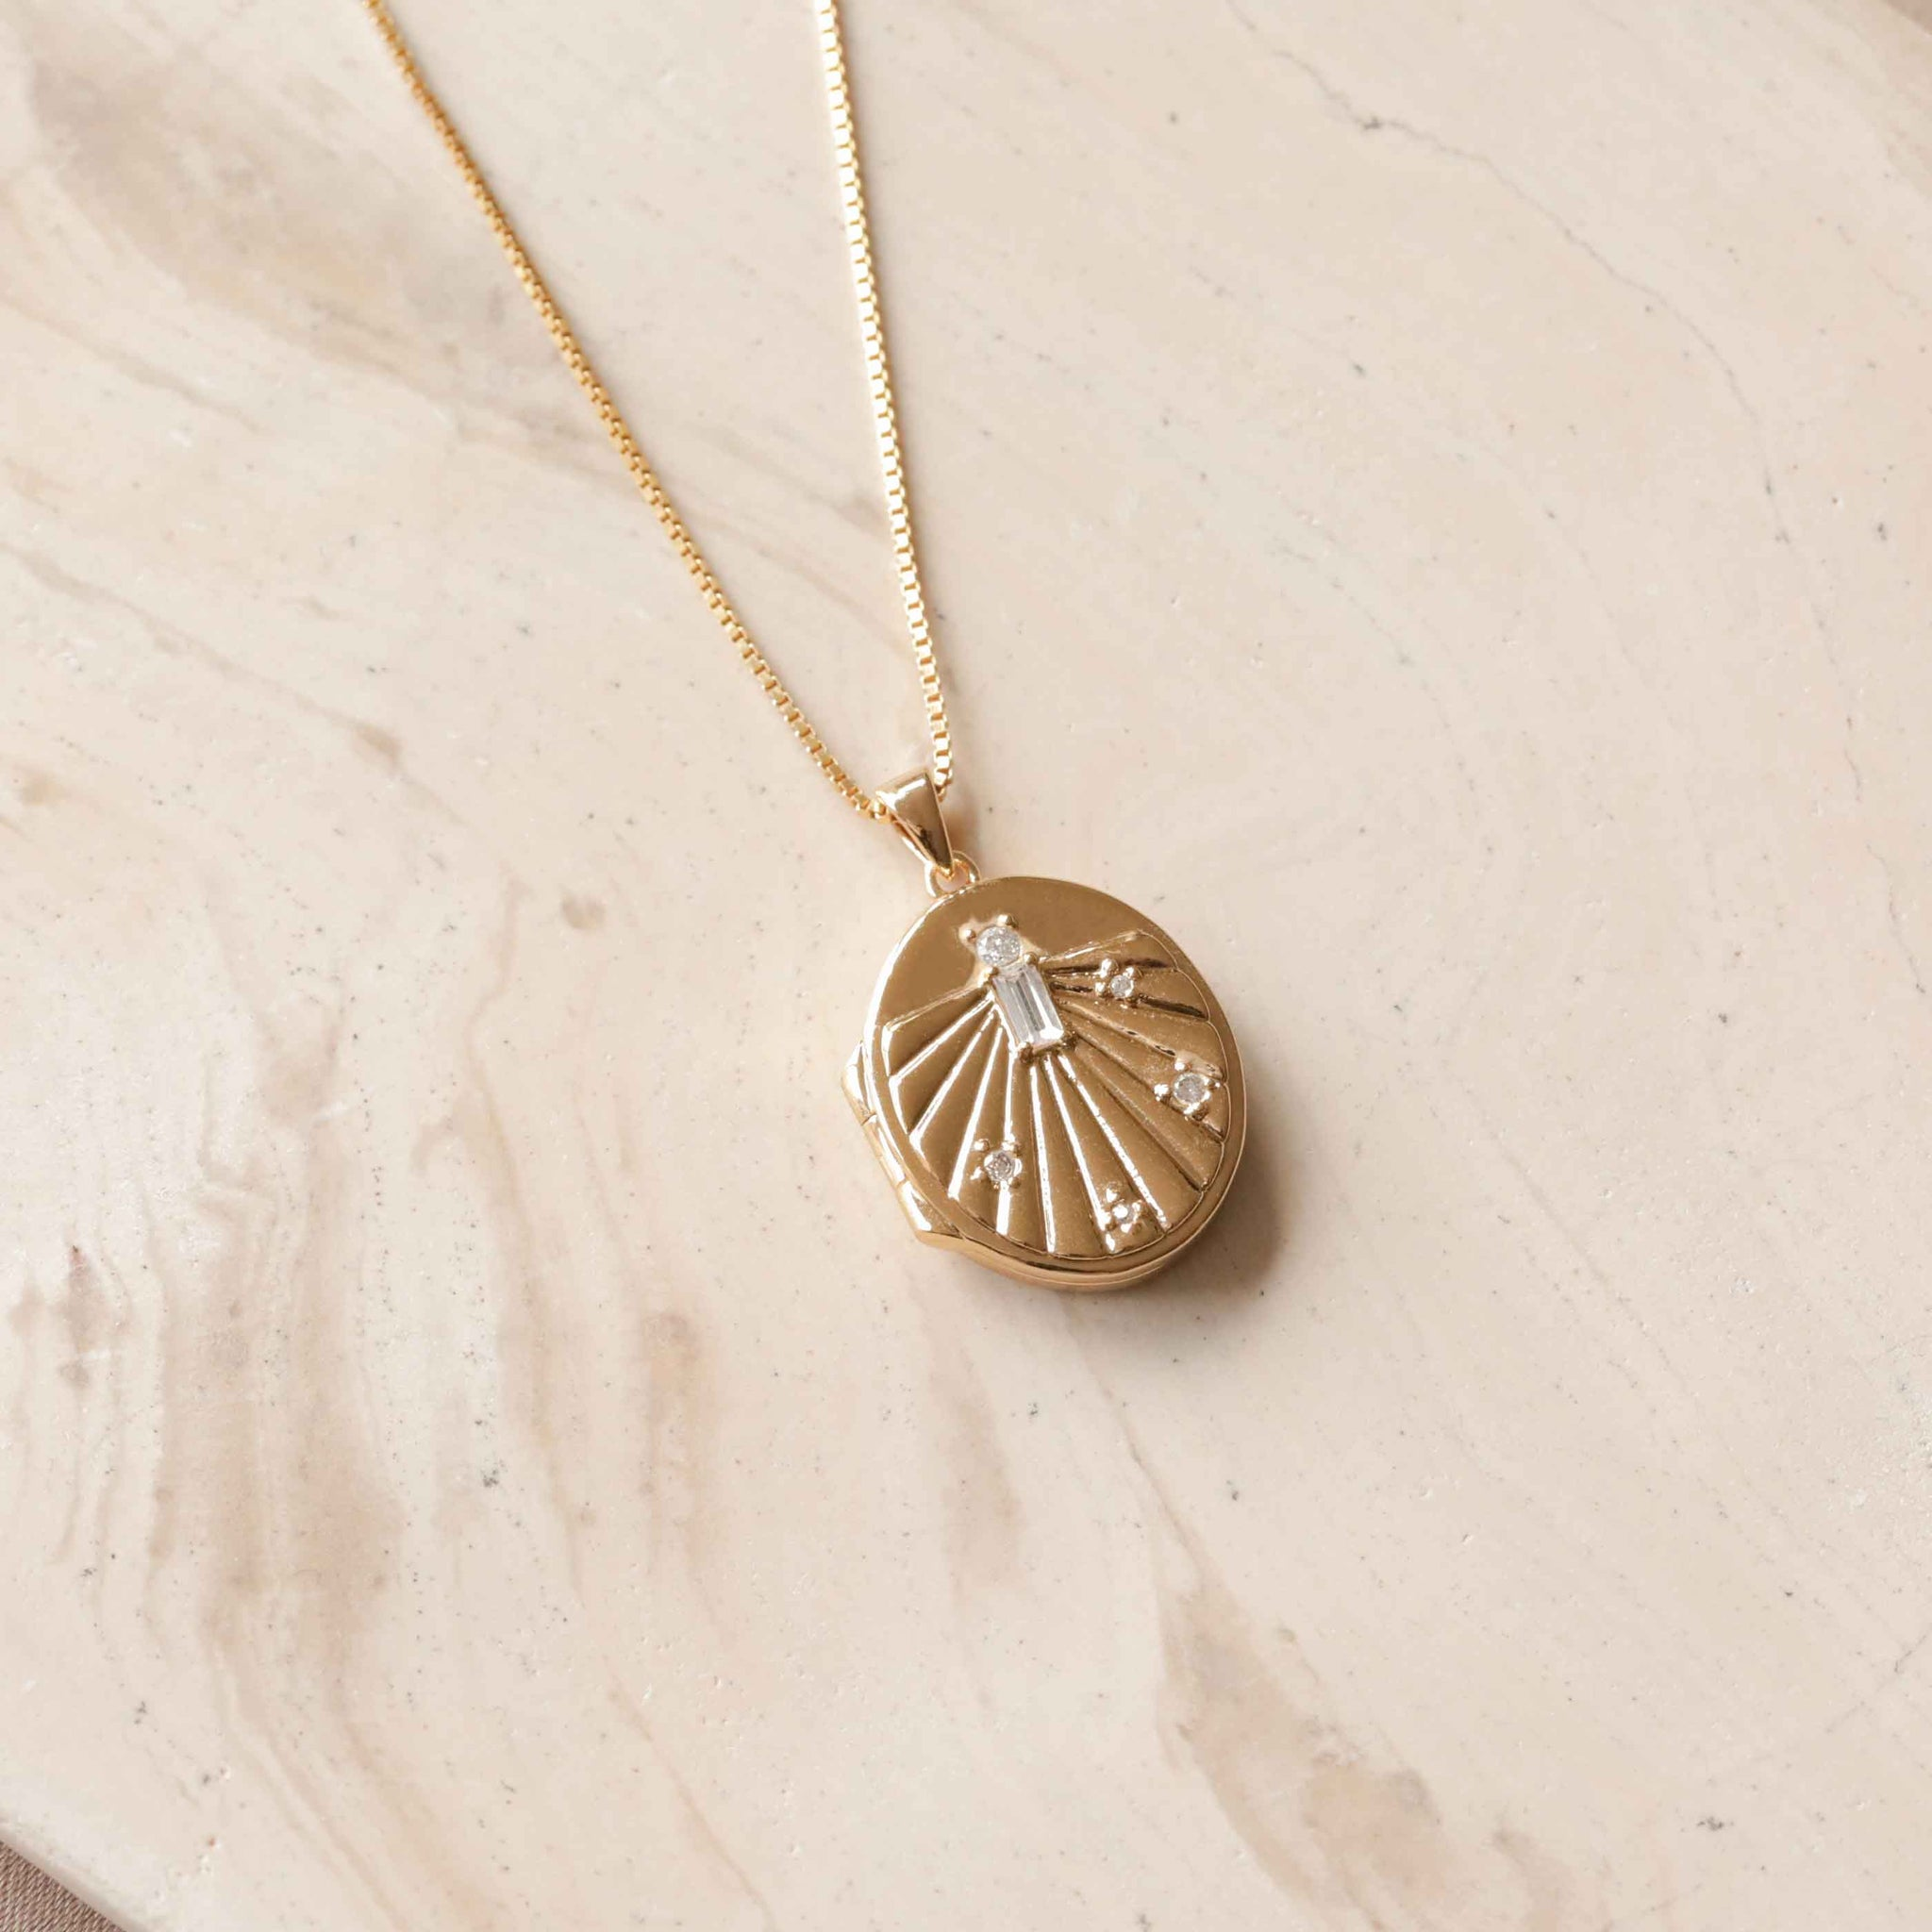 Solstice Locket Pendant Necklace in Gold